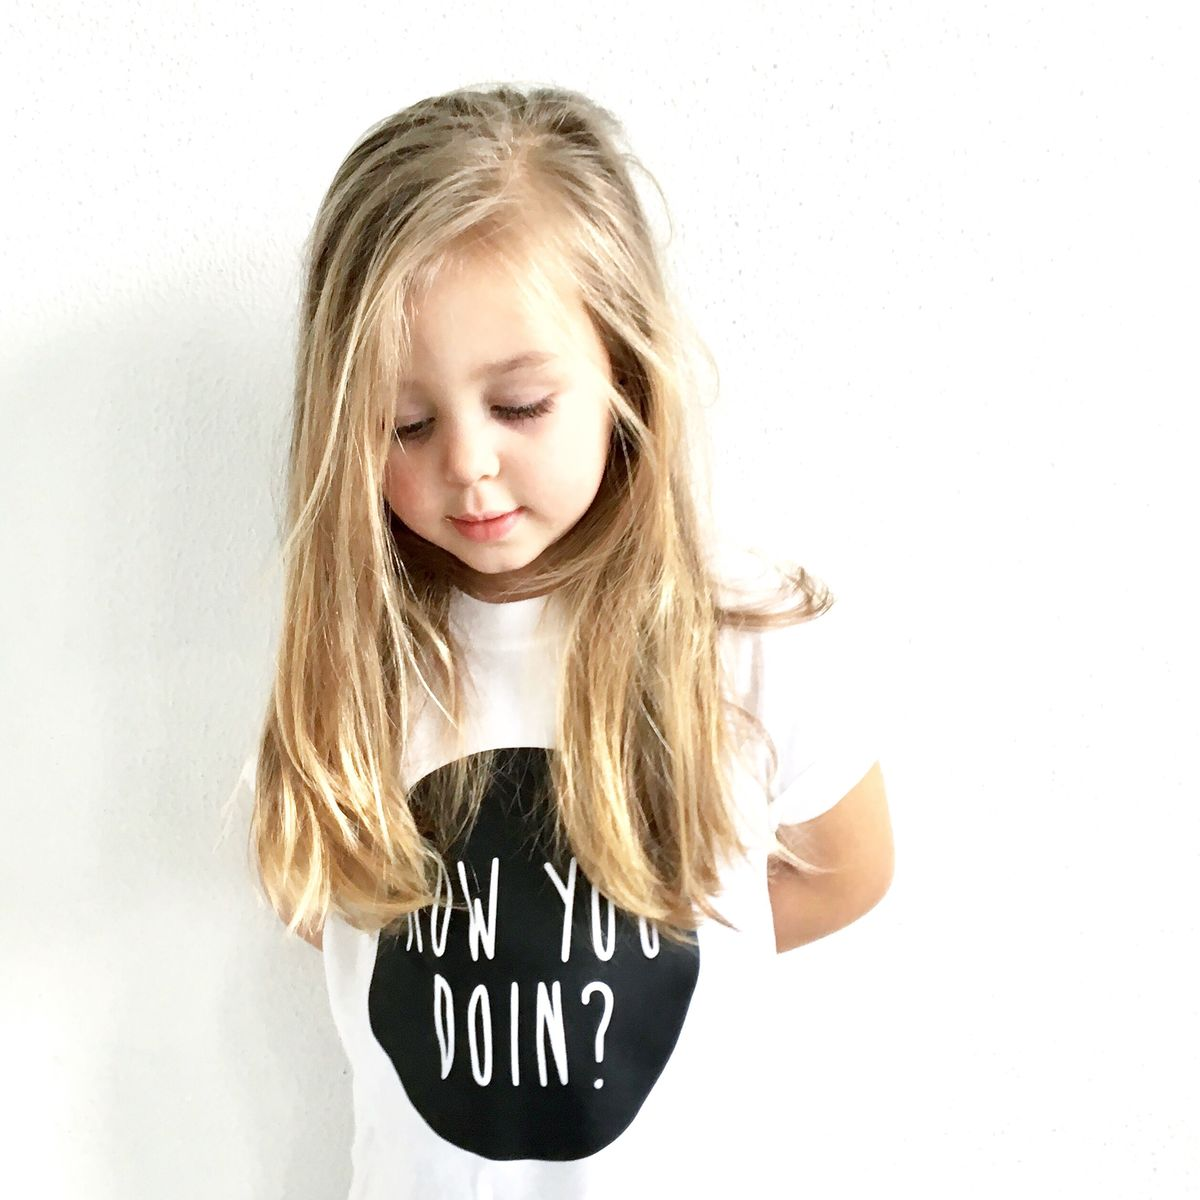 How You Doin Black & White Kids TShirts (various sizes) - product images  of